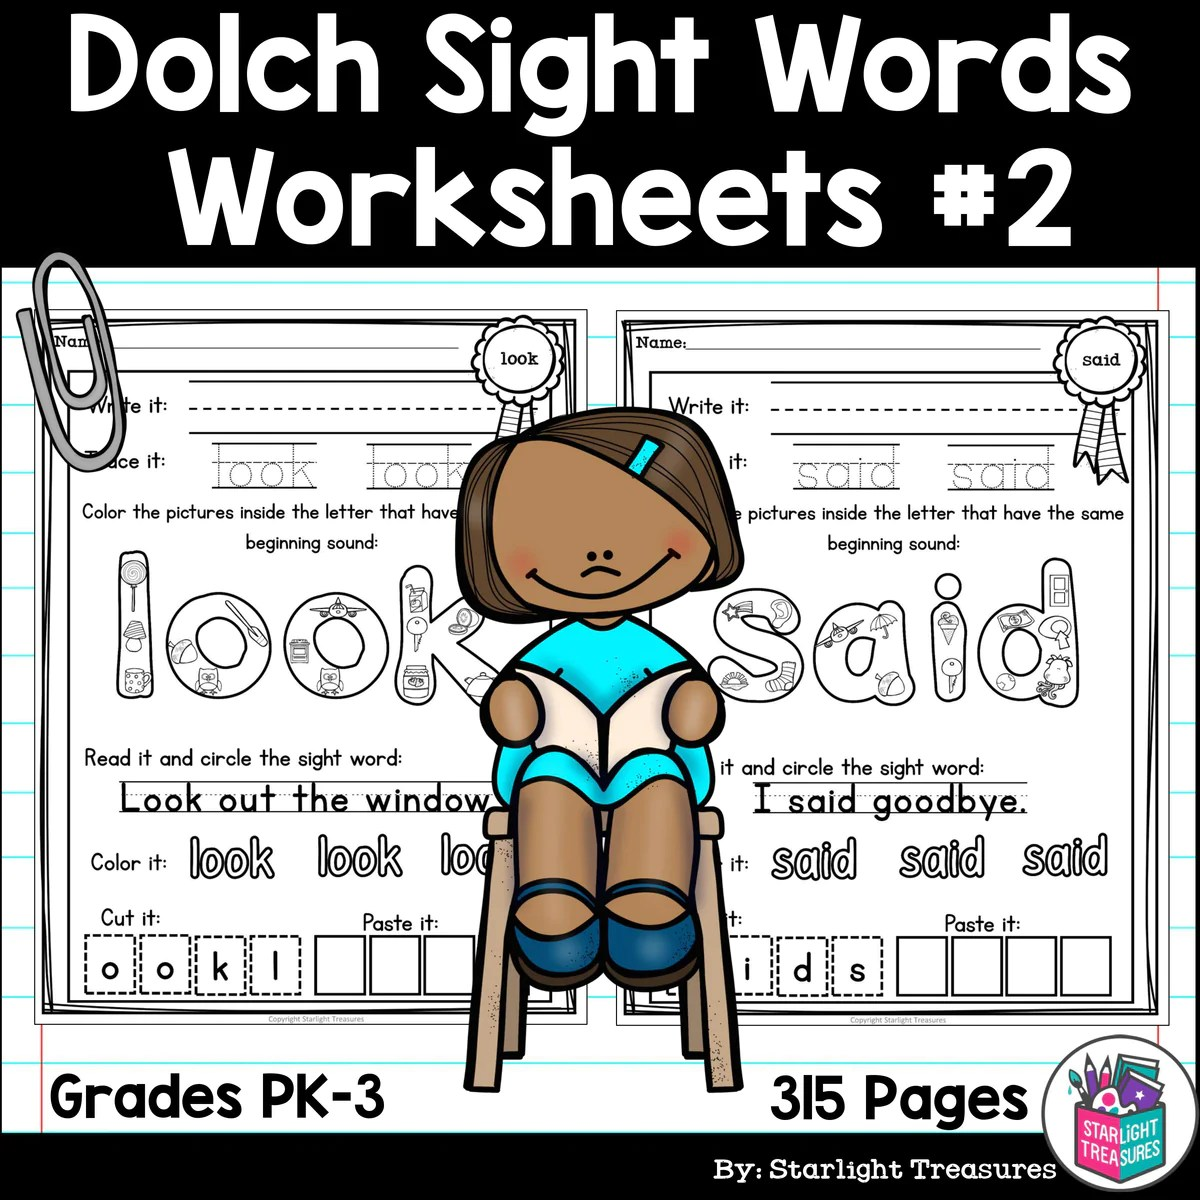 medium resolution of Dolch Sight Words Worksheets and Activities for Early Readers #2 –  Starlight Treasures Resources